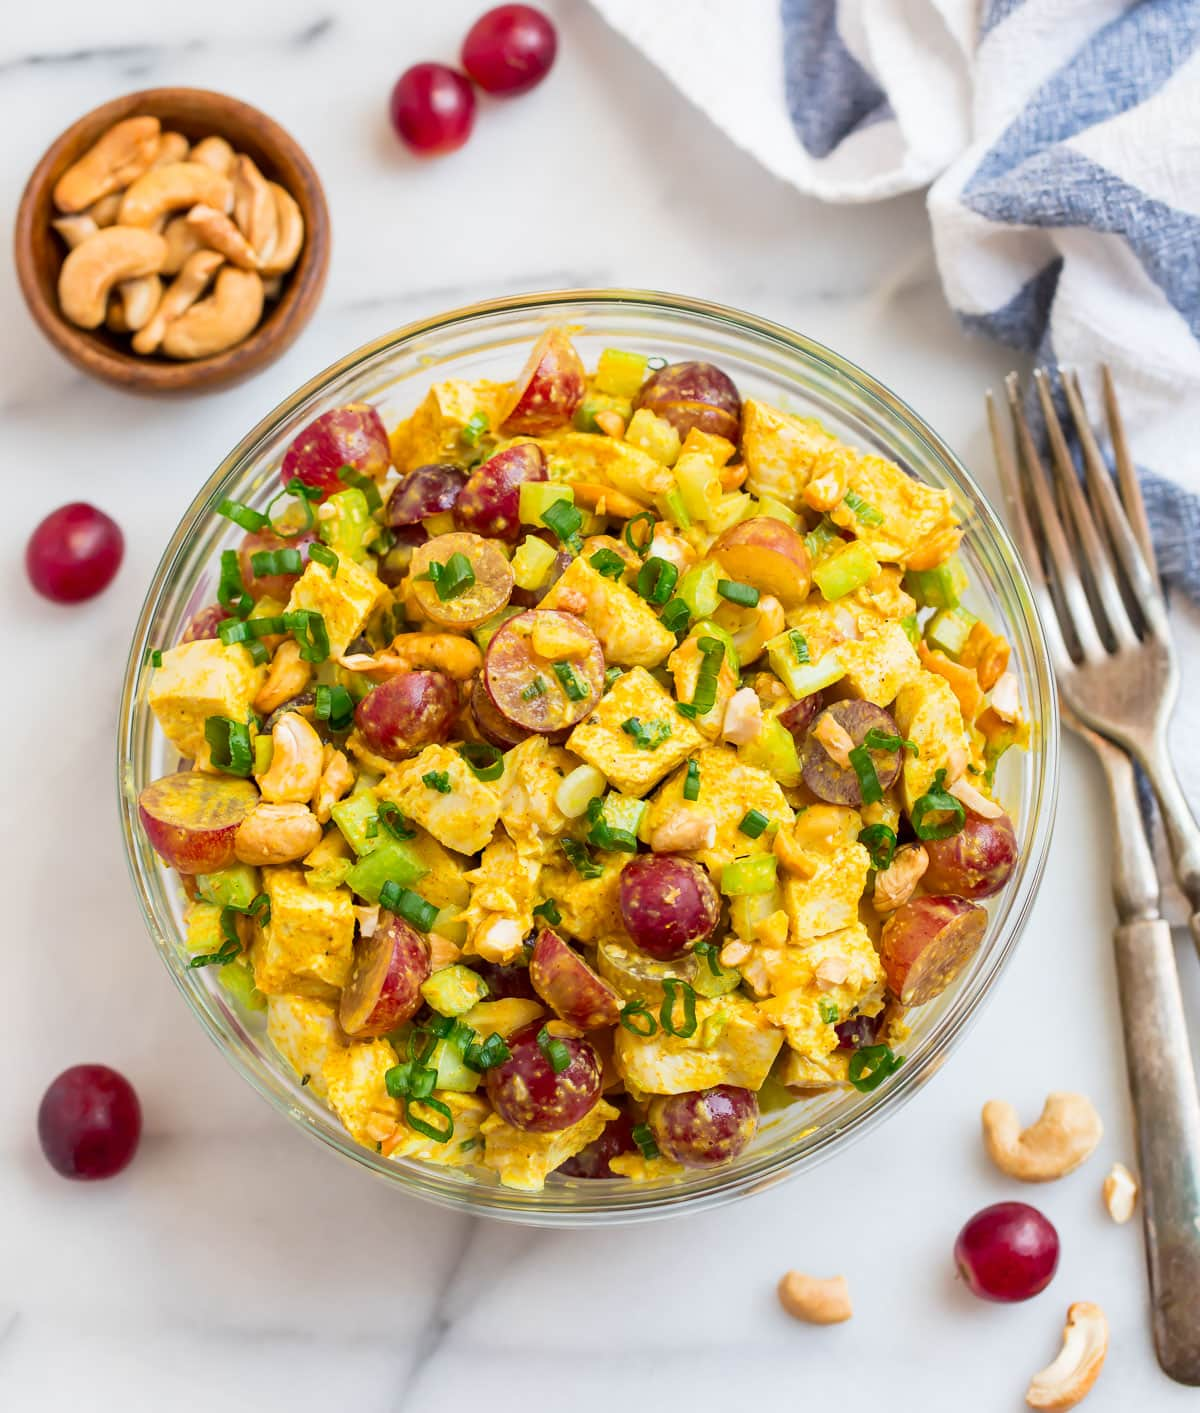 Curry chicken salad with cashews and grapes